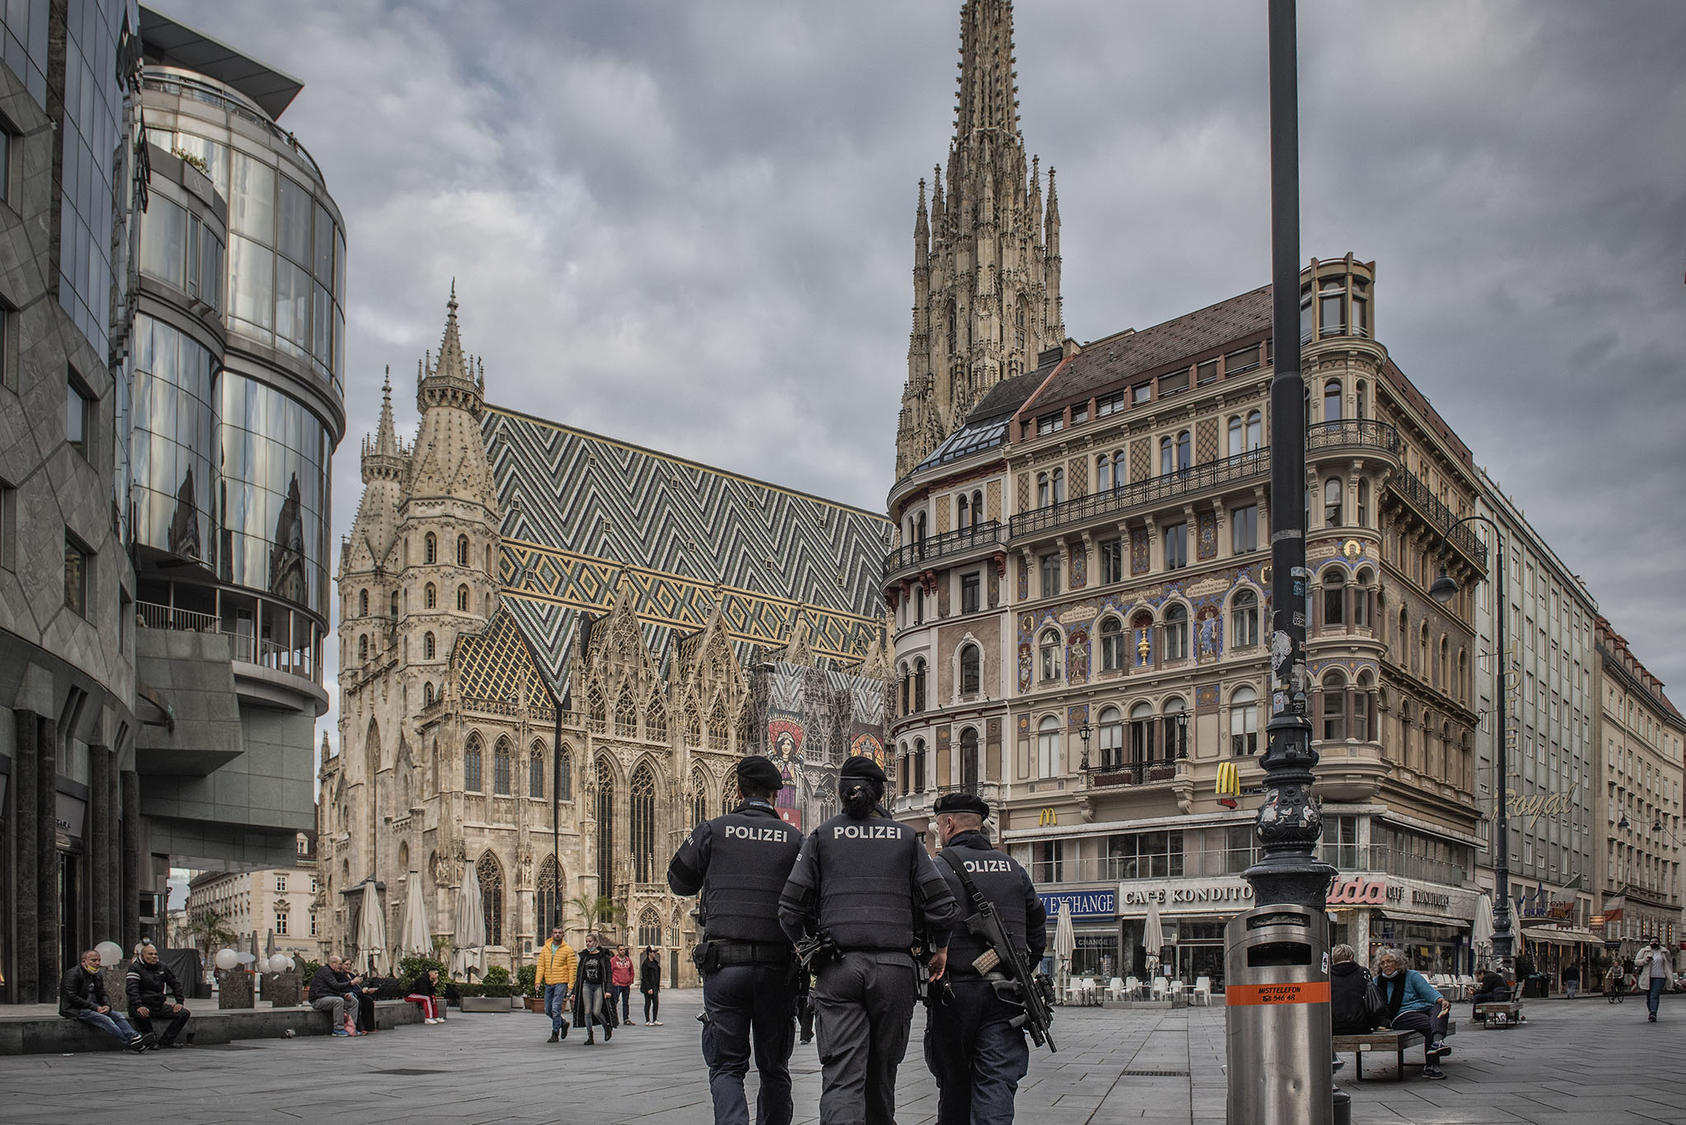 Police patrol the scene of a mass shooting in central Vienna on Tuesday, Nov. 3, 2020. The attacker, who was killed by police, was a 20-year-old Austrian citizen who had once been imprisoned for attempting to travel to Syria to join the Islamic State. (Laetitia Vancon/The New York Times)